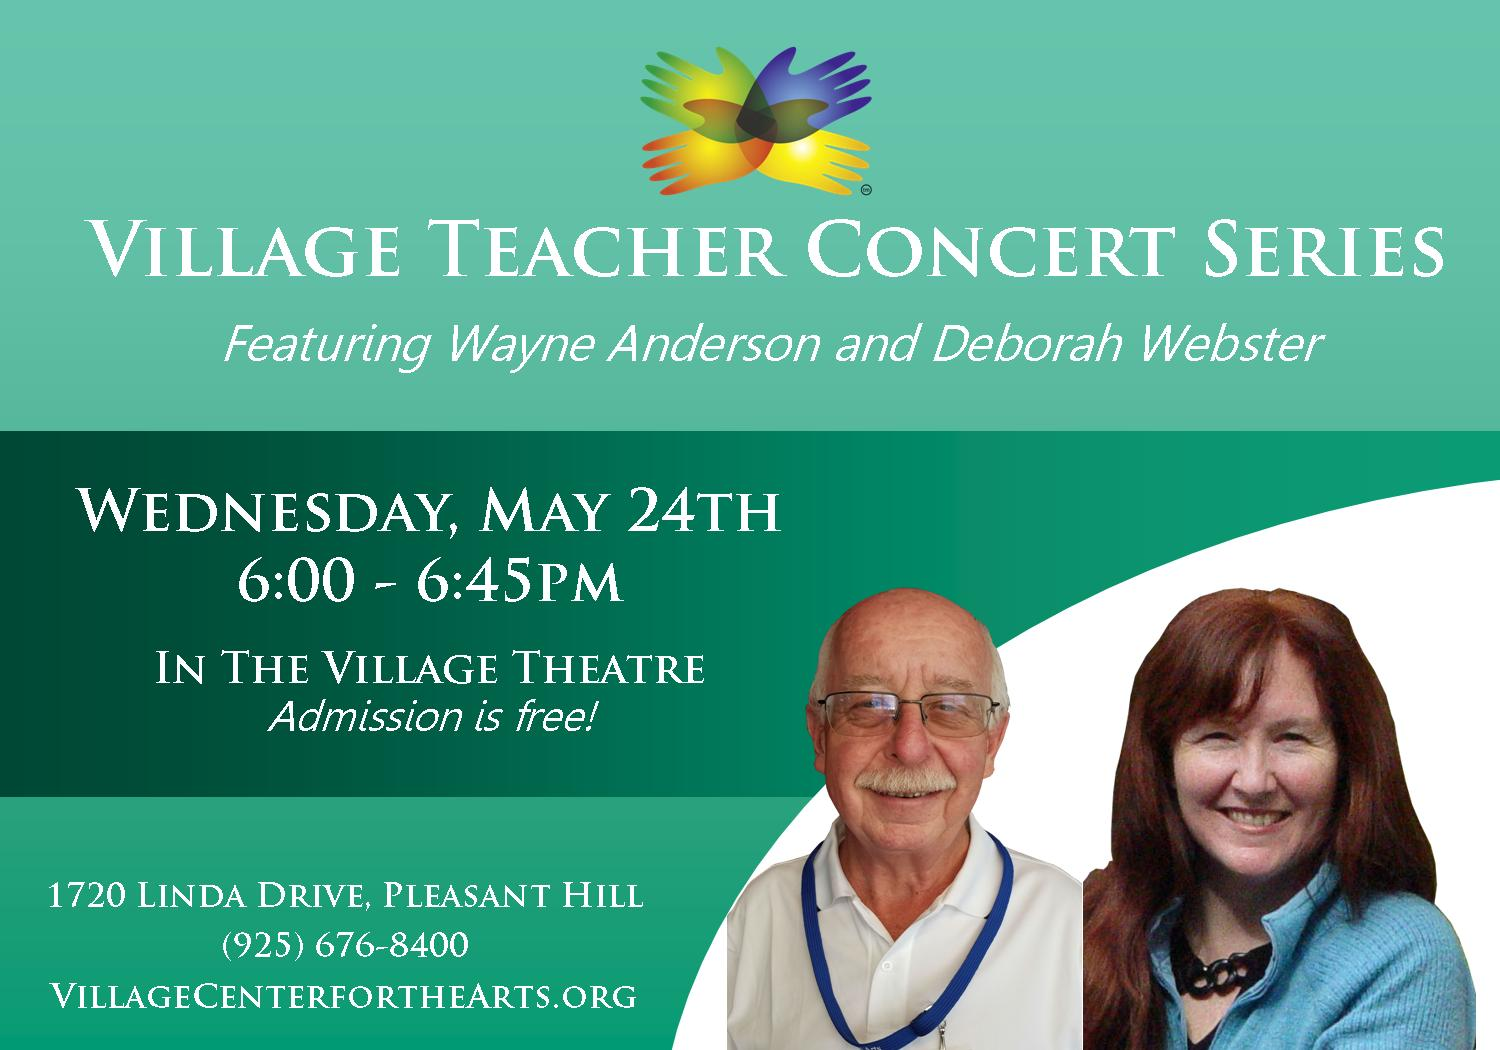 Village Teacher Concert Series - Postcard - May 2017.jpg